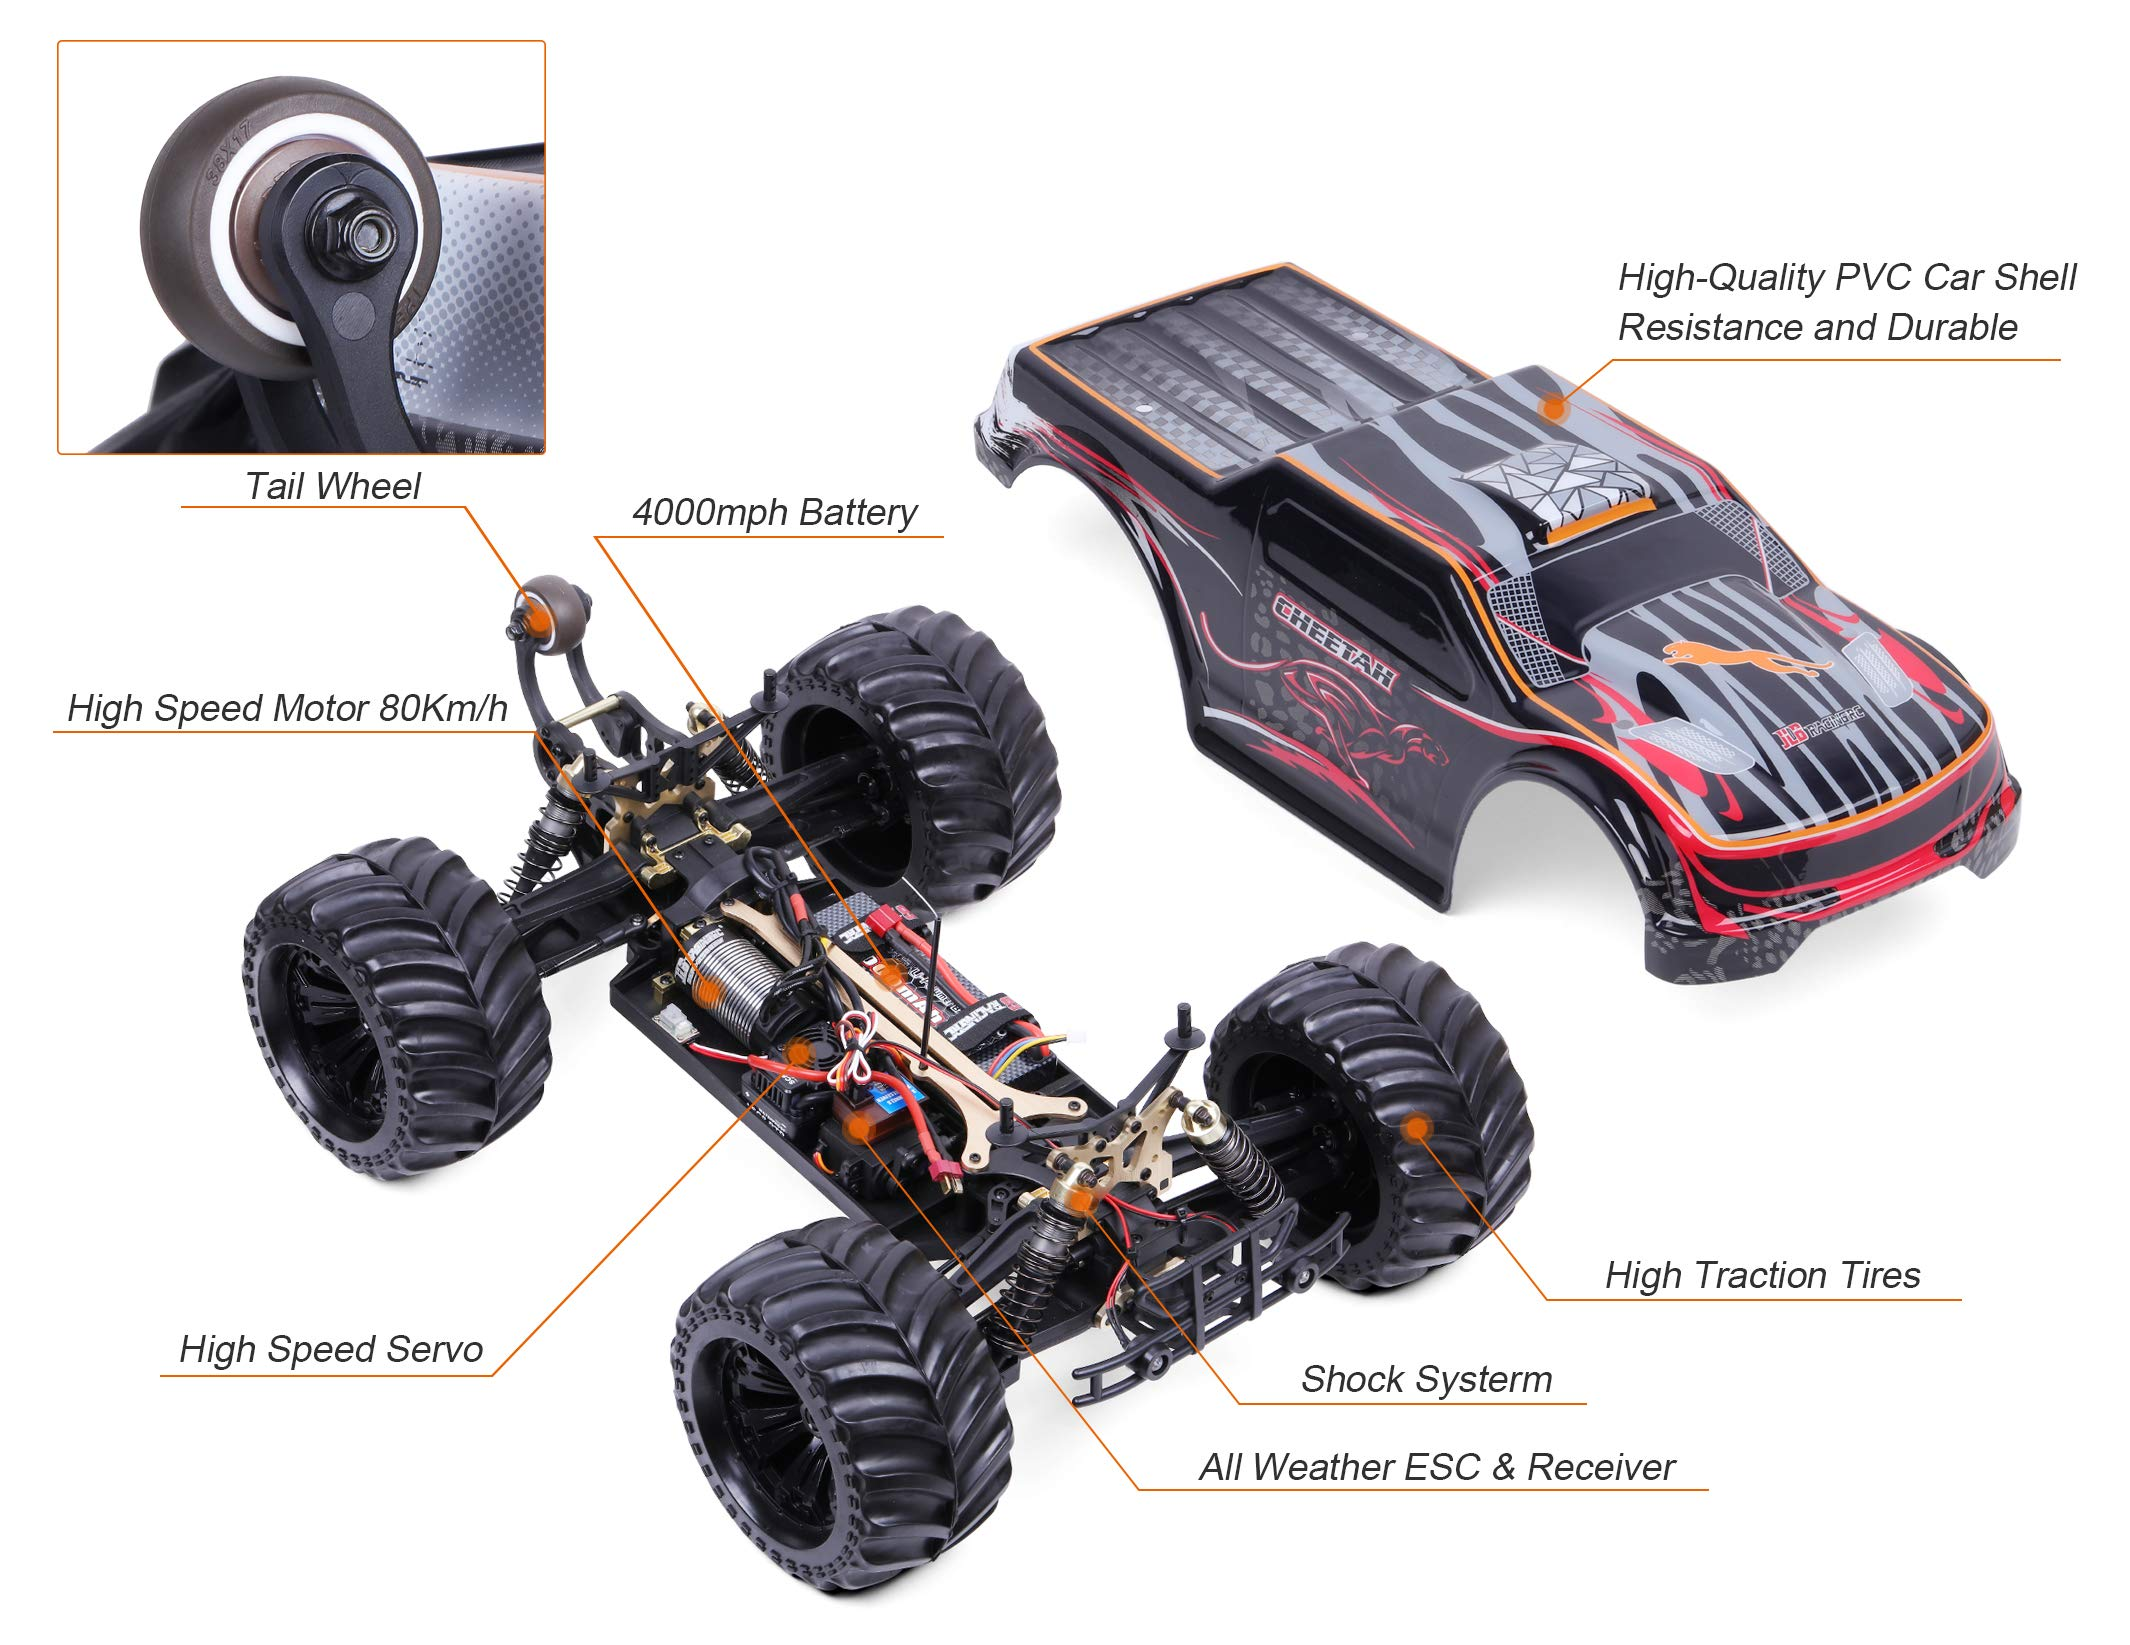 JLBRACINGRC Super Fast 1/10 Scale Cheetah RC Car, 80 KM/H 4WD 2.4GHZ RC Truck with 120A ESC IPX7 Waterproof 3670 2500KV Brushless Motor Wheelie Function 4x4 Off Road RTR RC Monster Truck for Adults by JLBRACINGRC (Image #6)